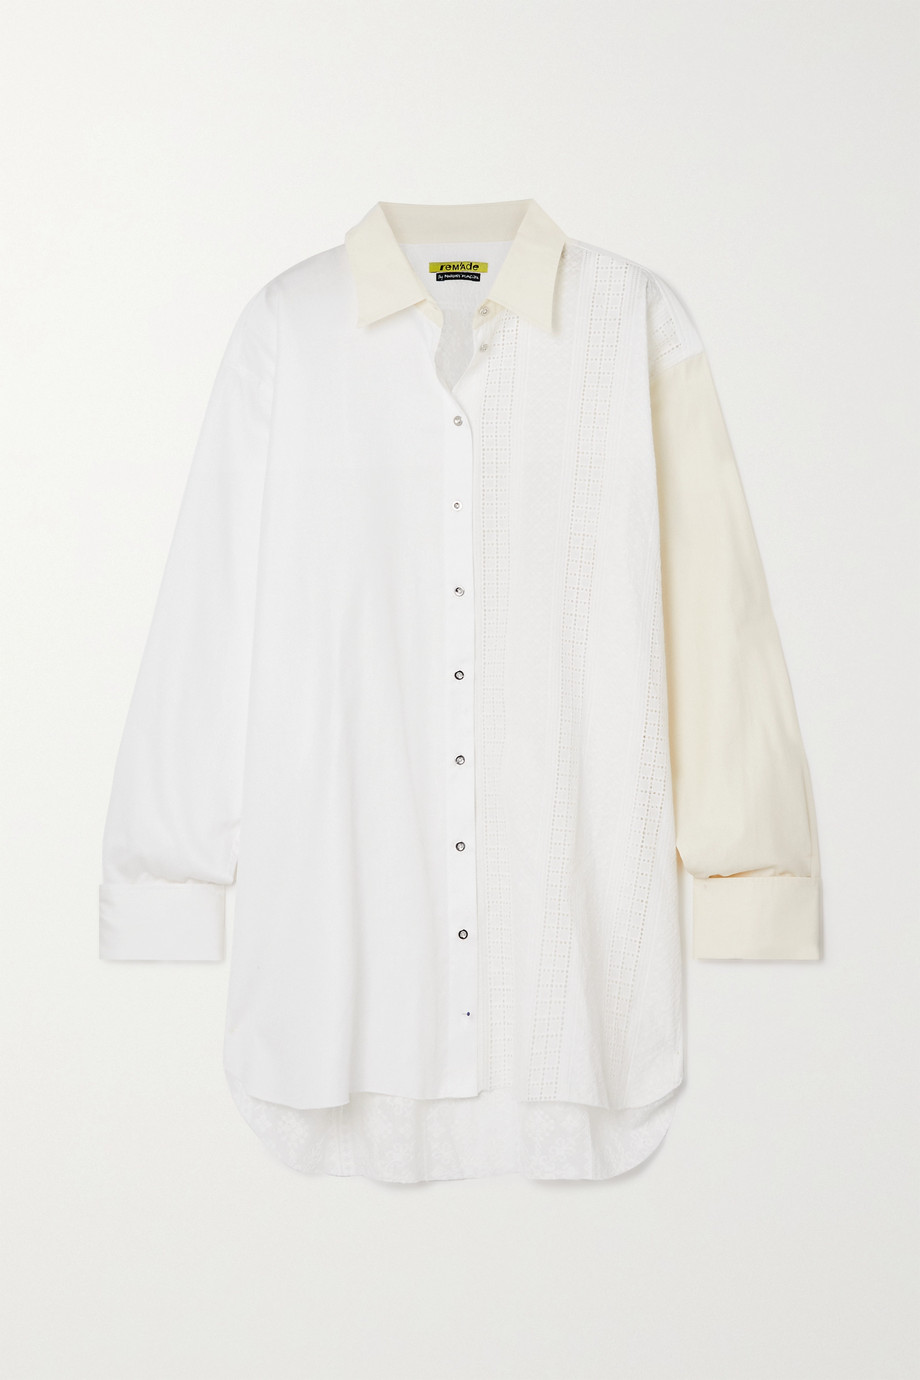 MARQUES' ALMEIDA + NET SUSTAIN ReM'Ade by Marques' Almeida two-tone paneled cotton shirt